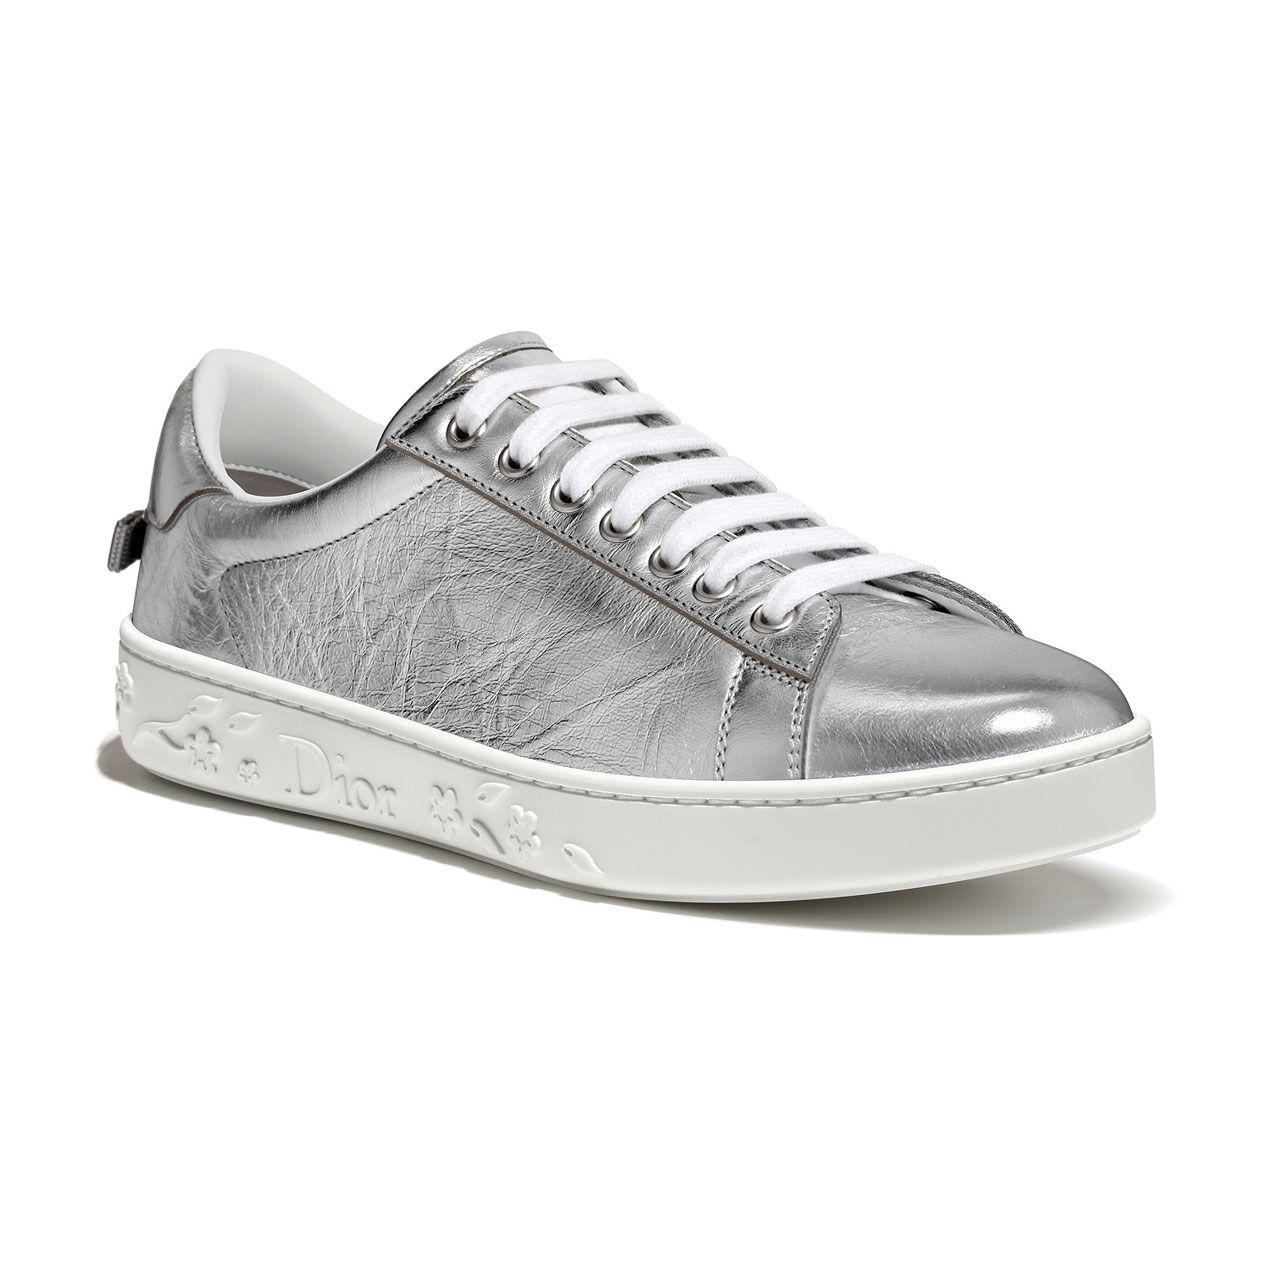 dior silver sneakers off 53% - www